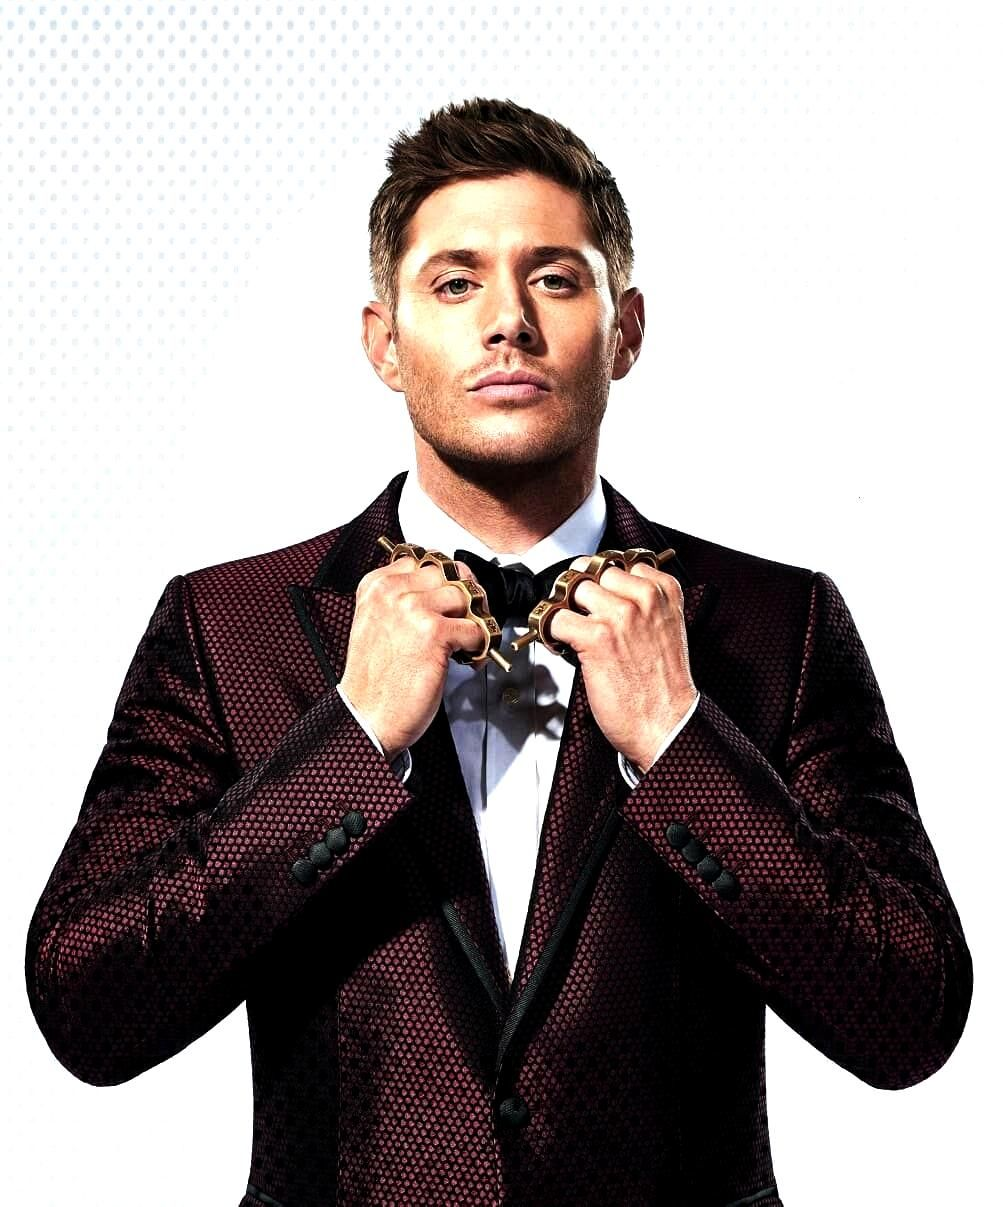 Jensen Ackles for Entertainment Weekly 2017 : Jensen Ackles for Entertainment Weekly 2017